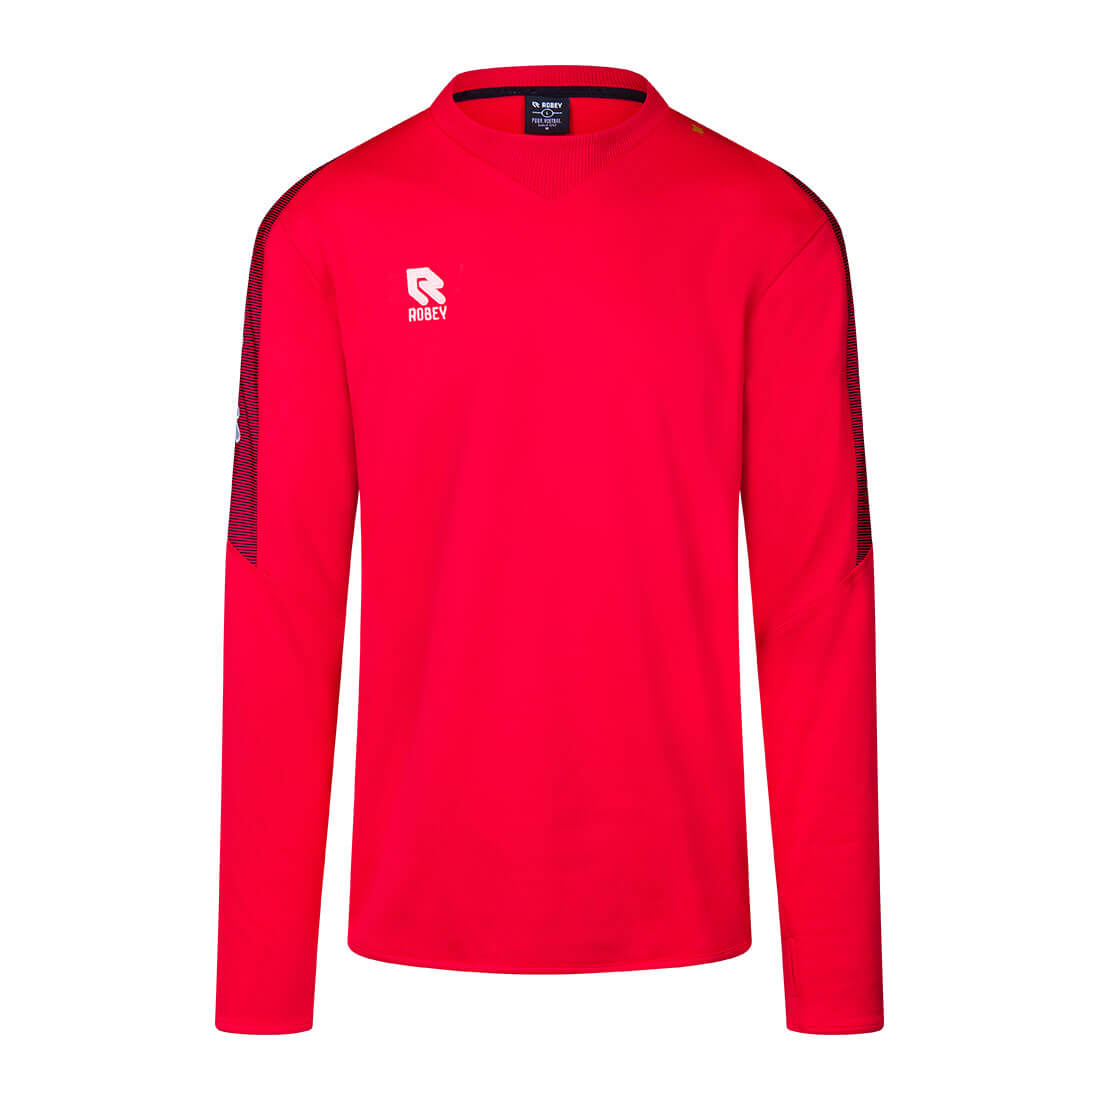 Robey Performance Sweater - Red